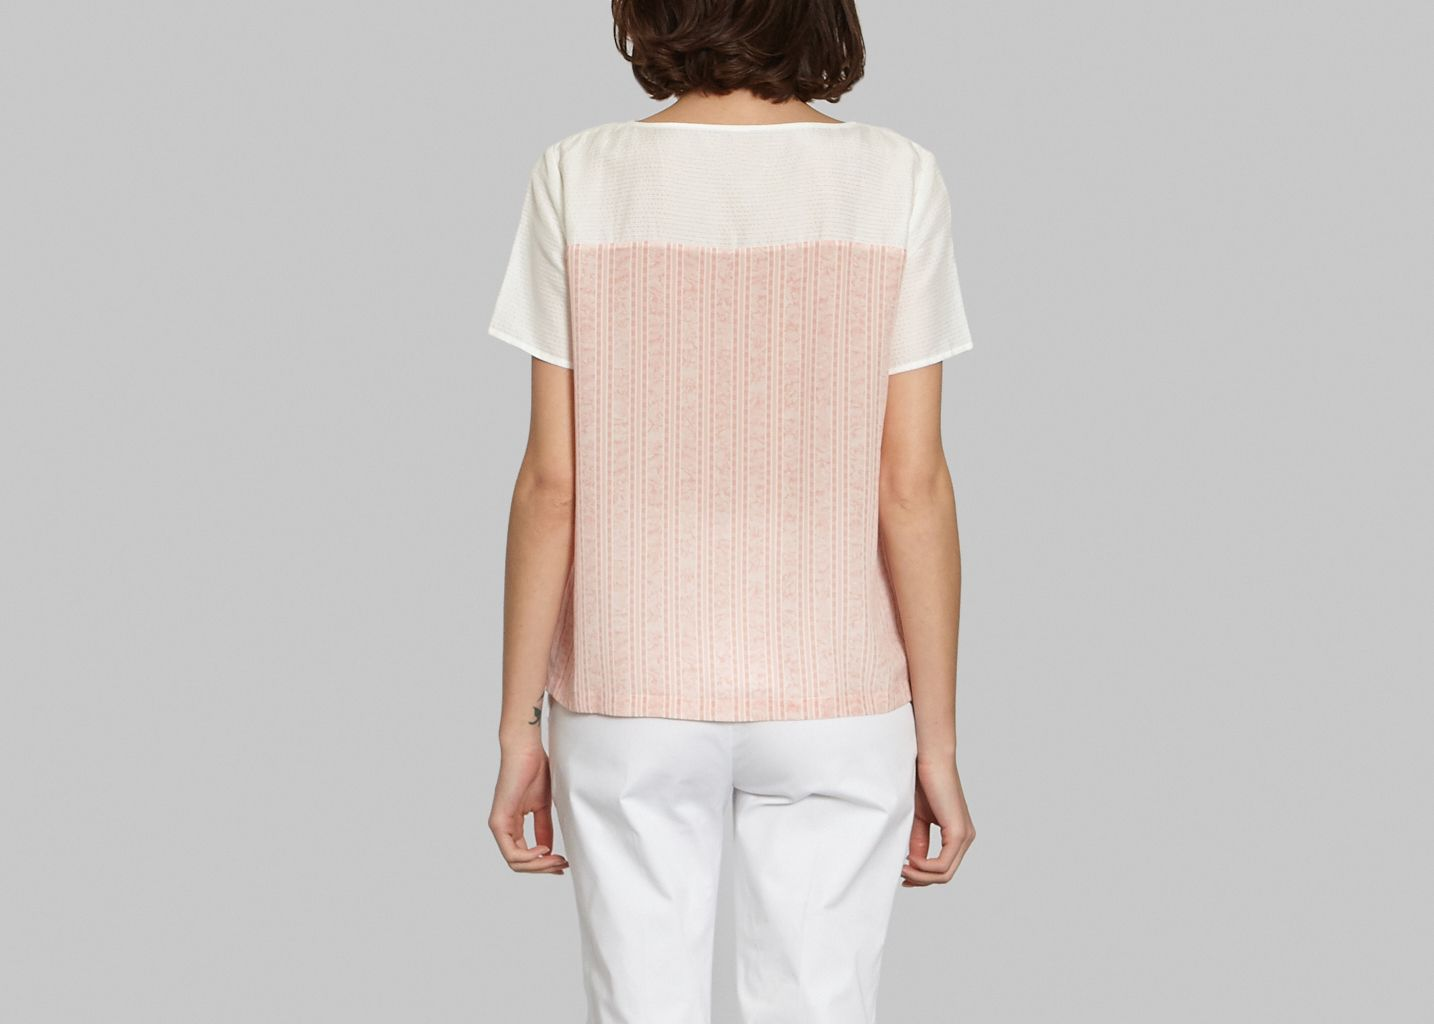 Blouse Le Zèbre - Soi Paris